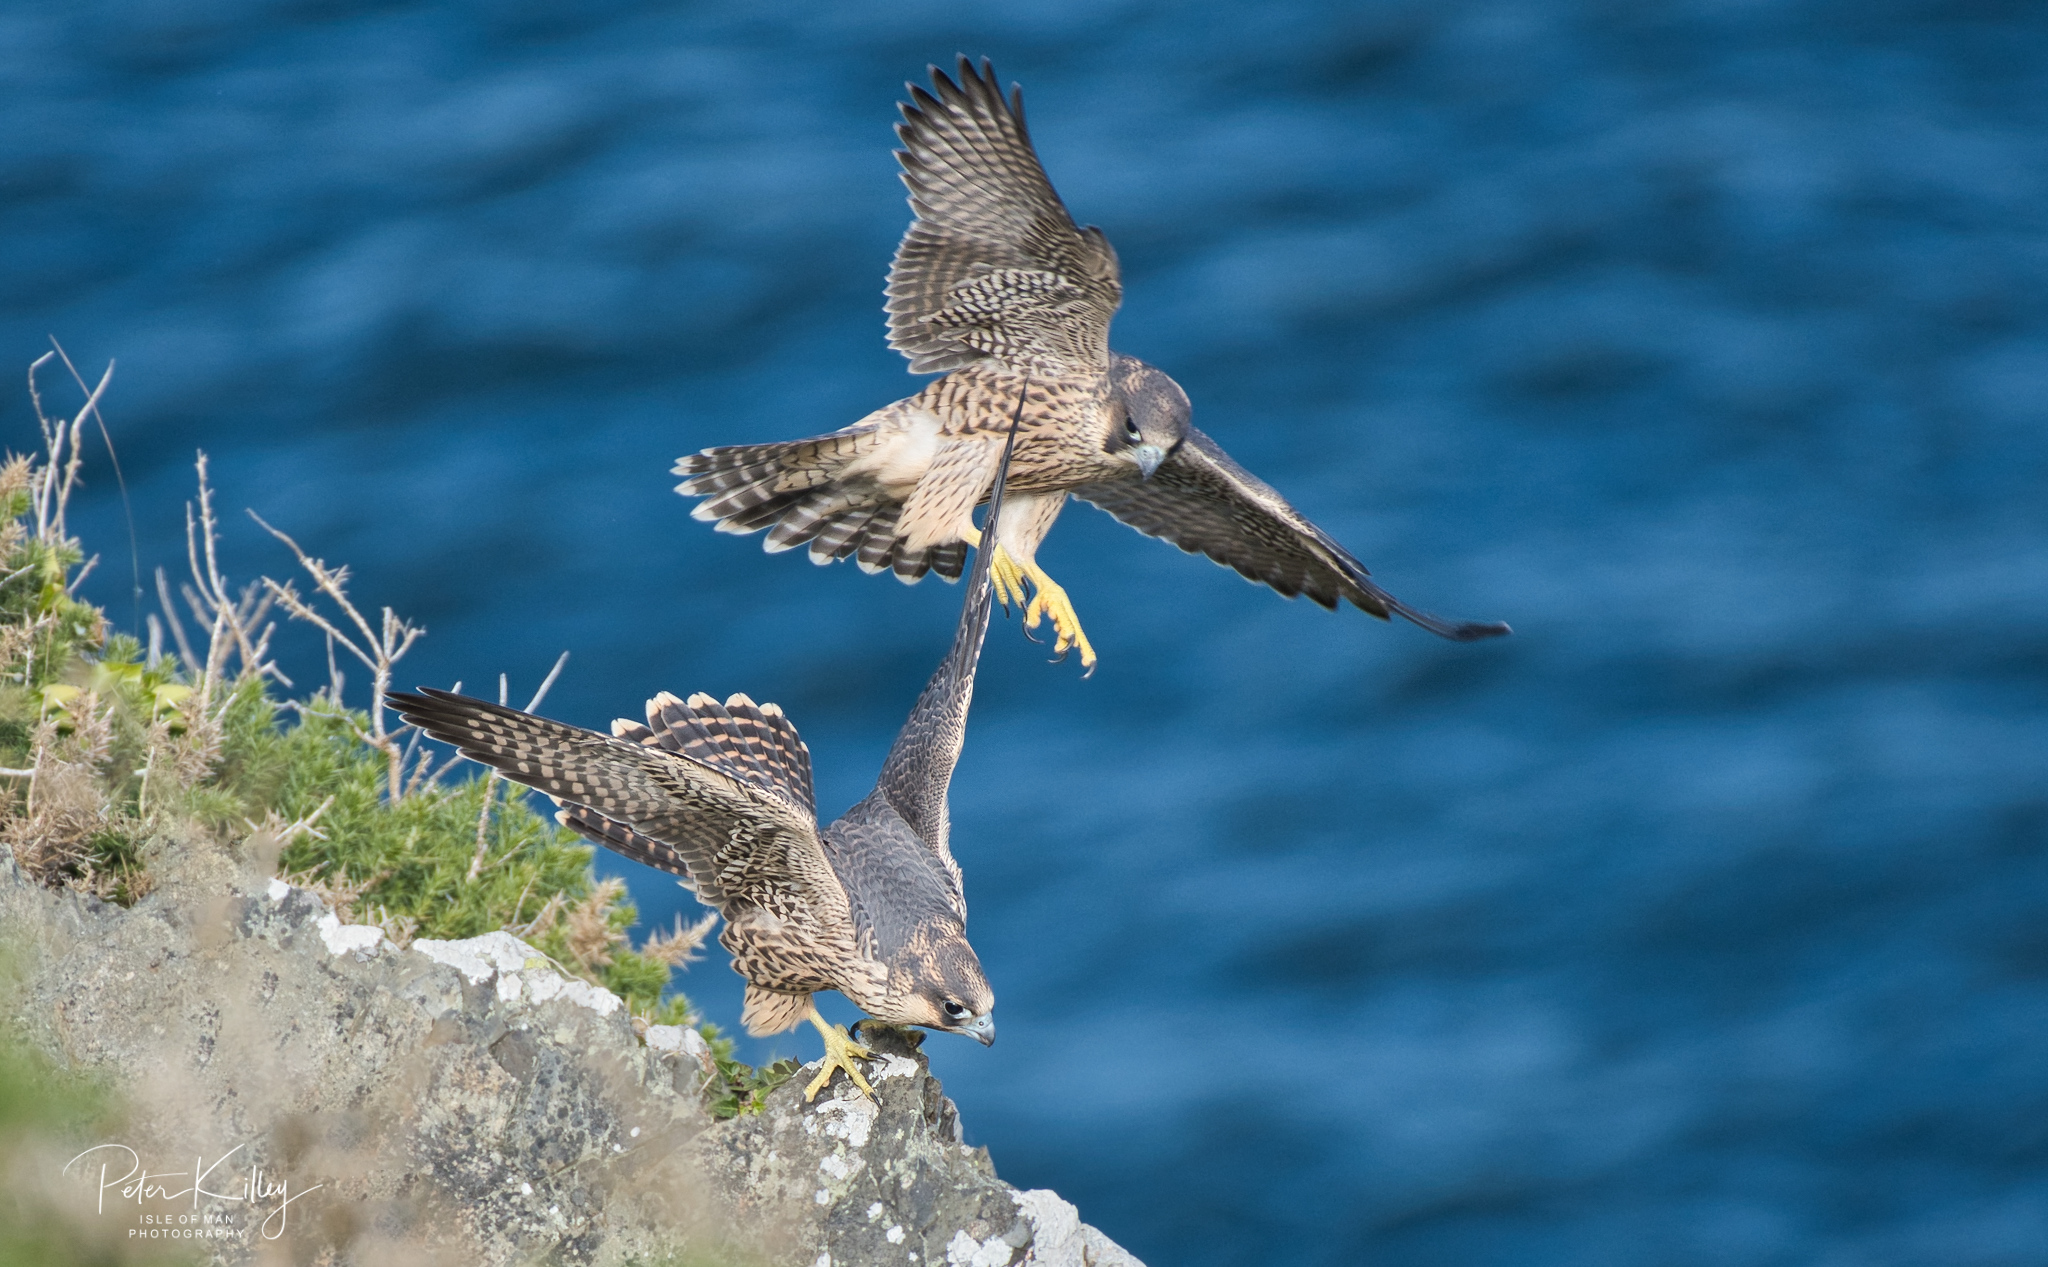 Juvenile Peregrine Falcons Isle of Man - © Peter Killey - www.manxscenes.com